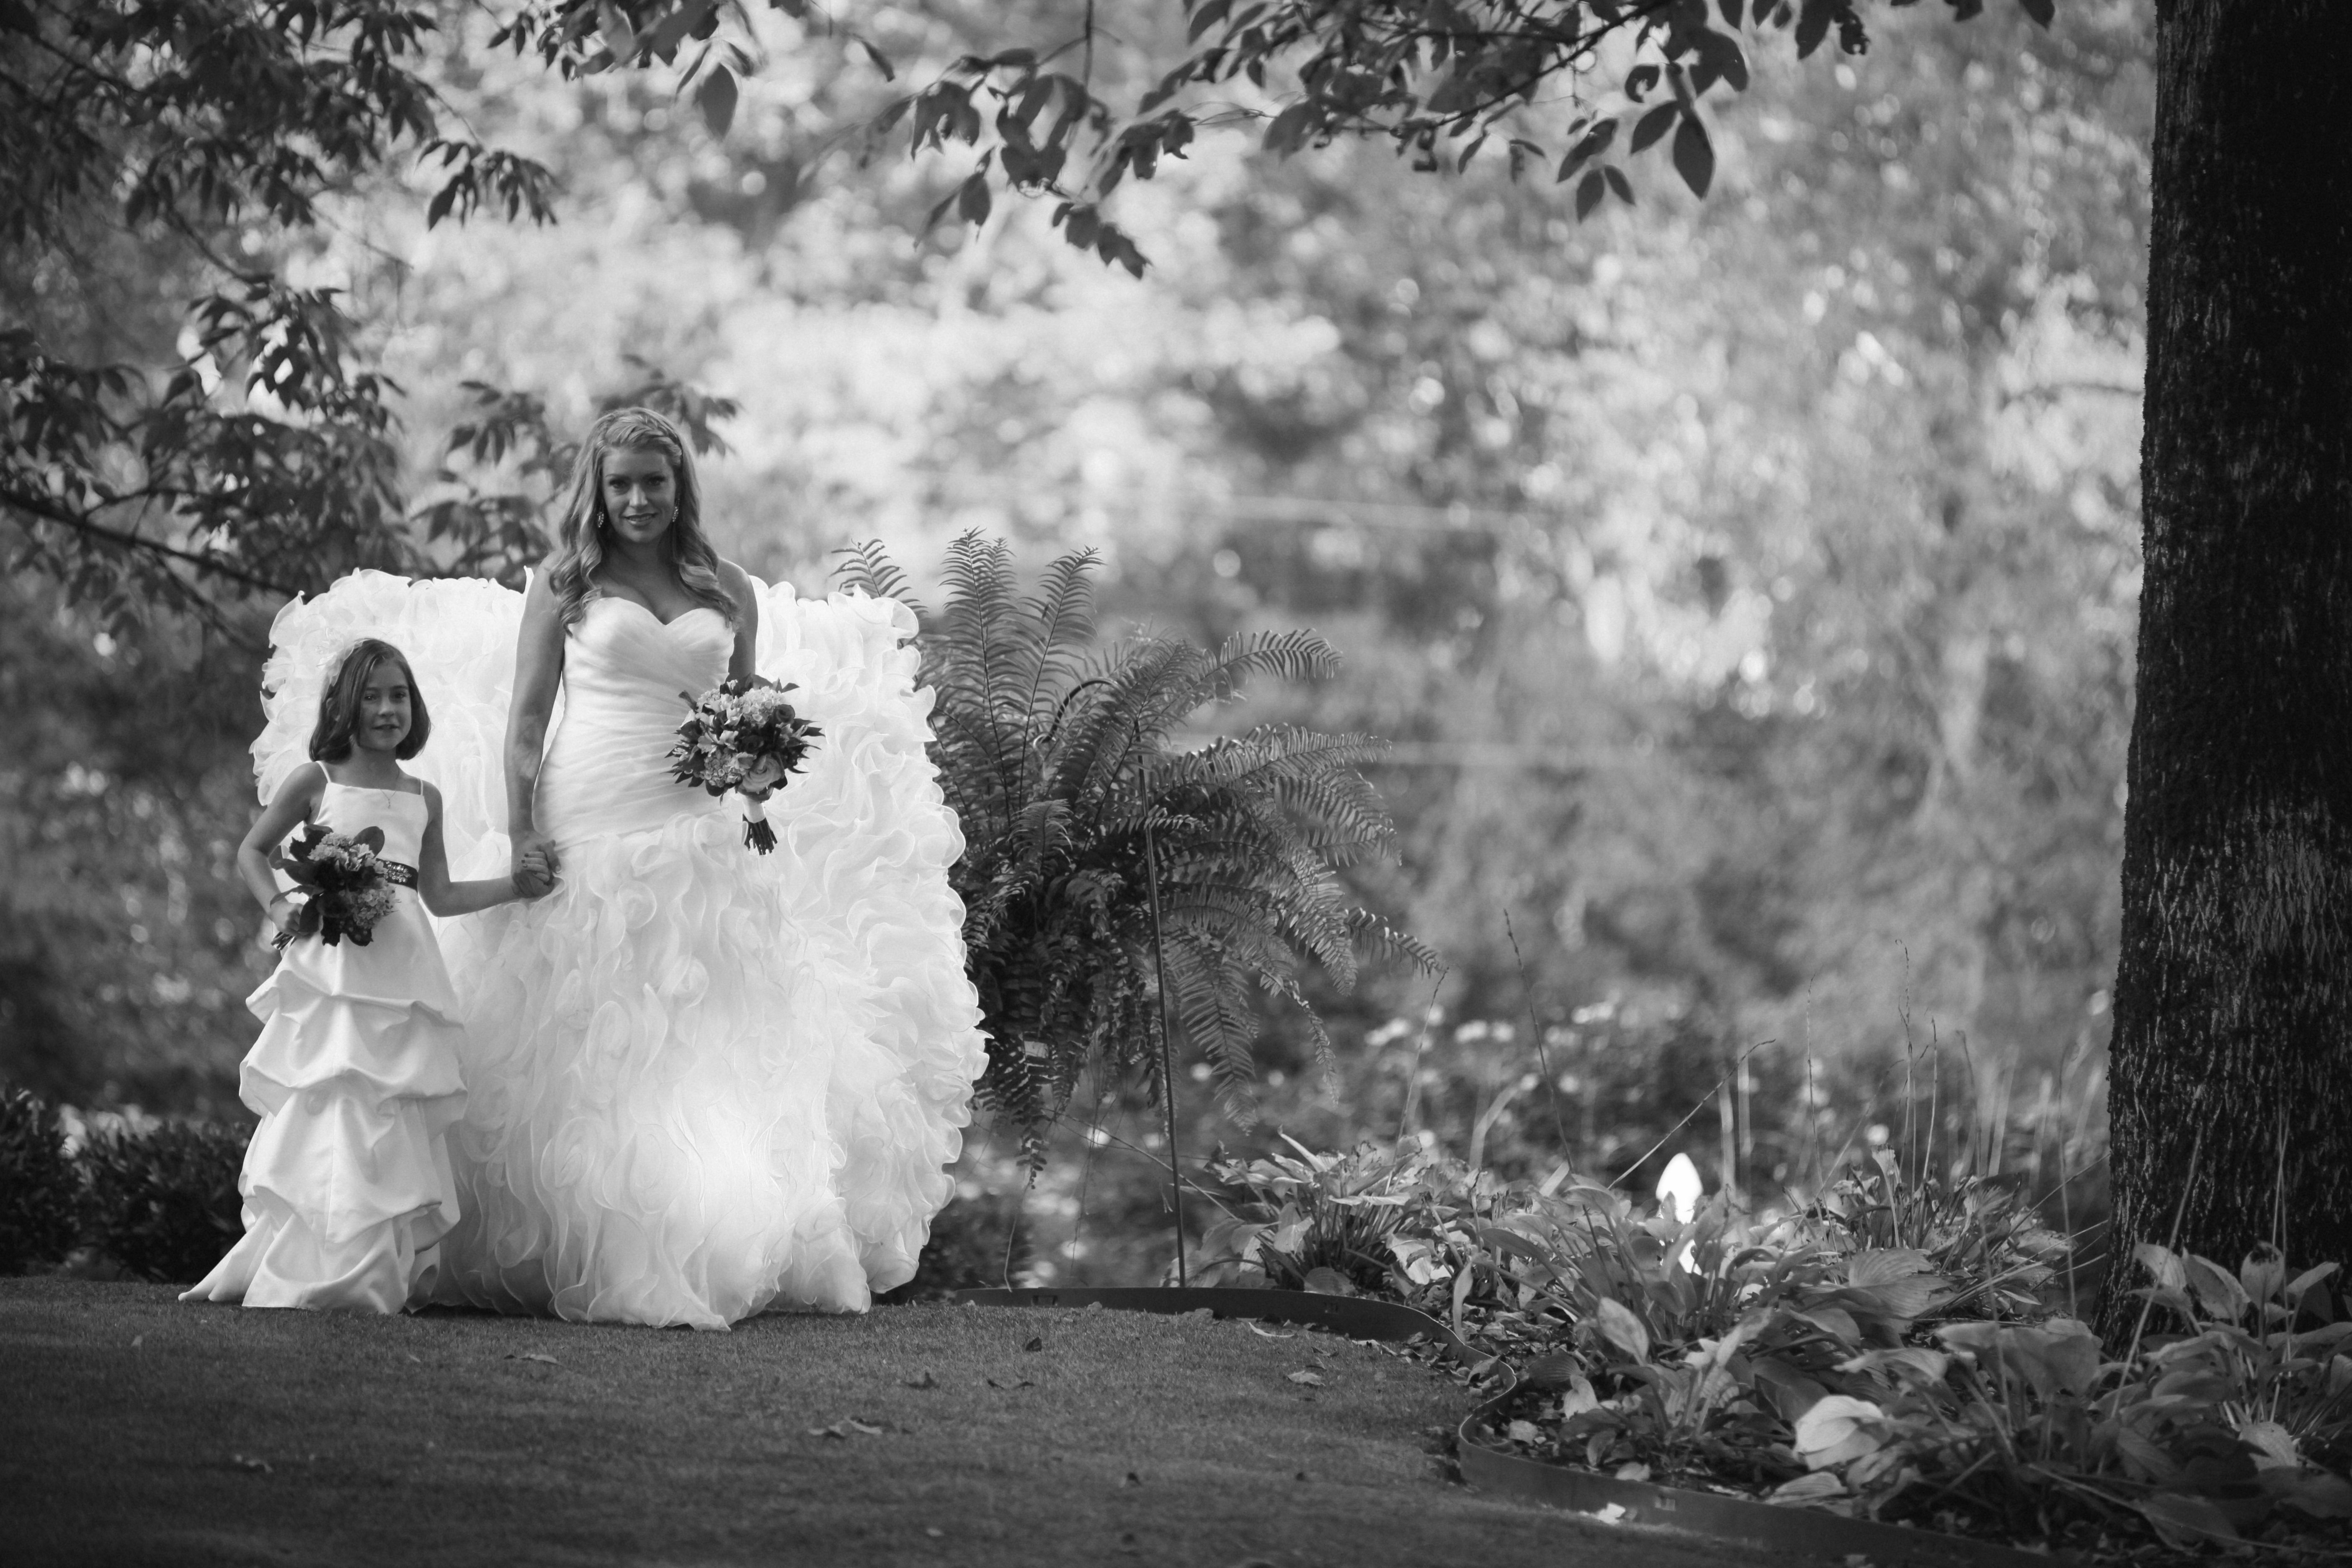 Coming down the aisle. Wedding planner fixing a bride